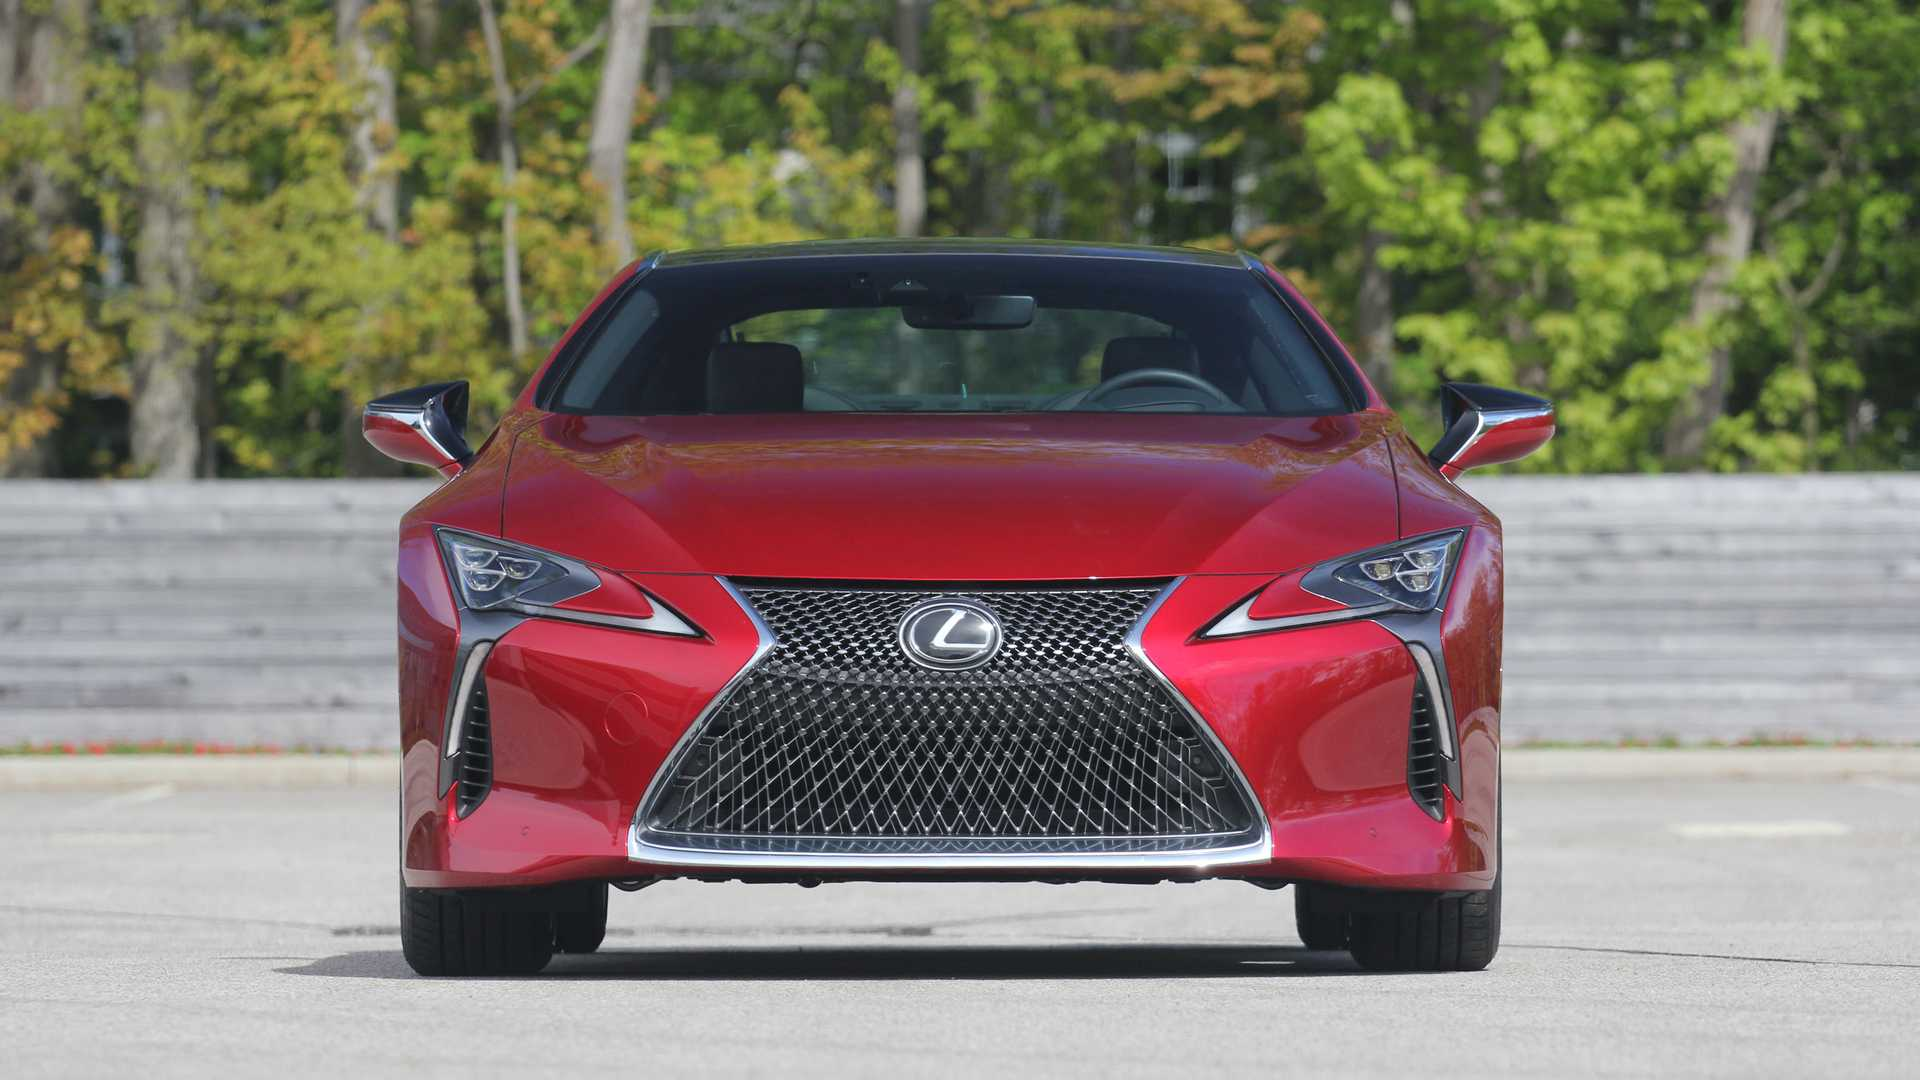 Lexus Lf Lc Price >> 2019 Lexus Lc 500 Pros And Cons